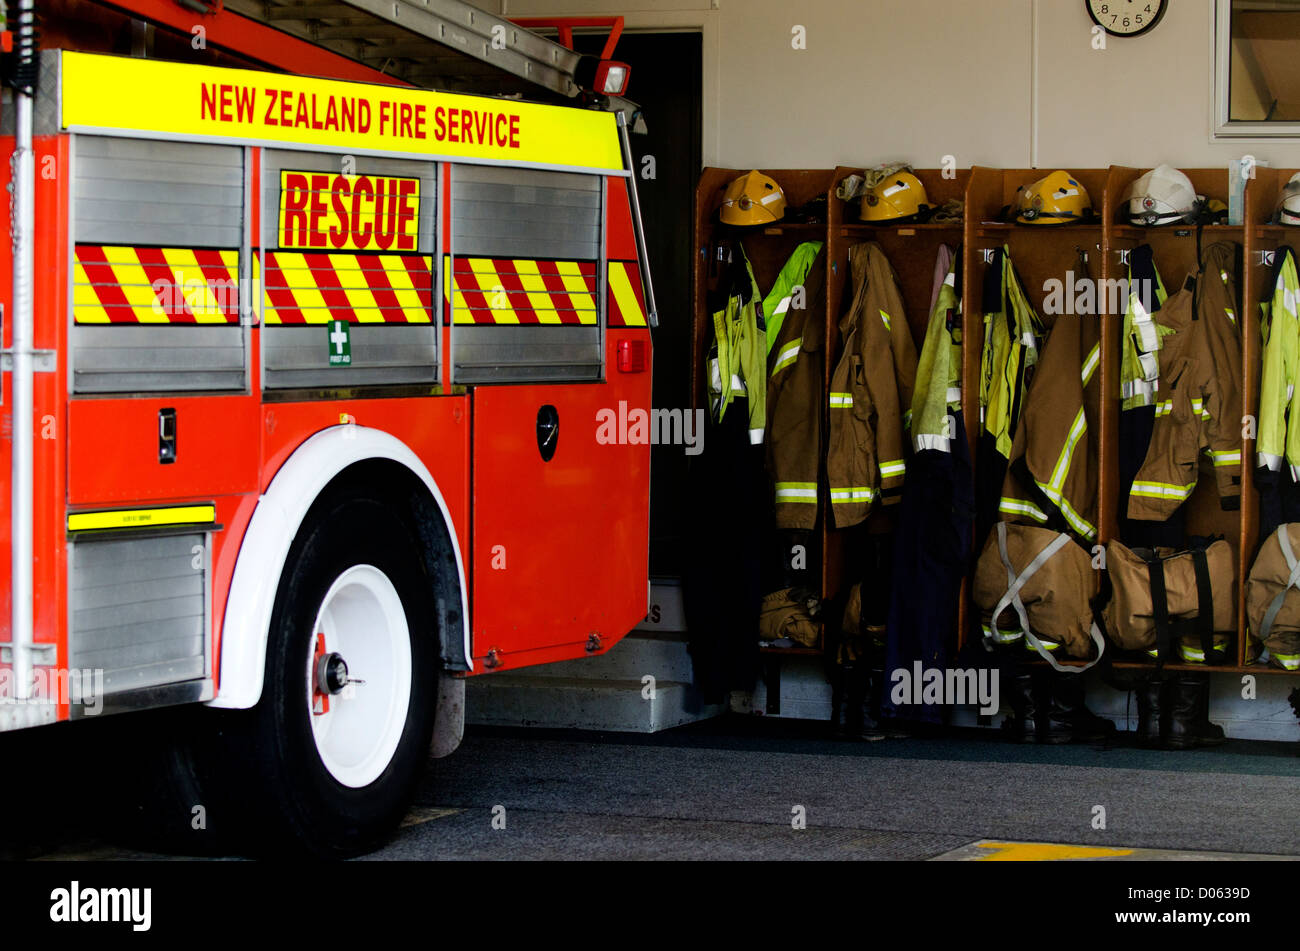 Helmets, boots and jackets in a fire station ready to be used by firefighters. - Stock Image